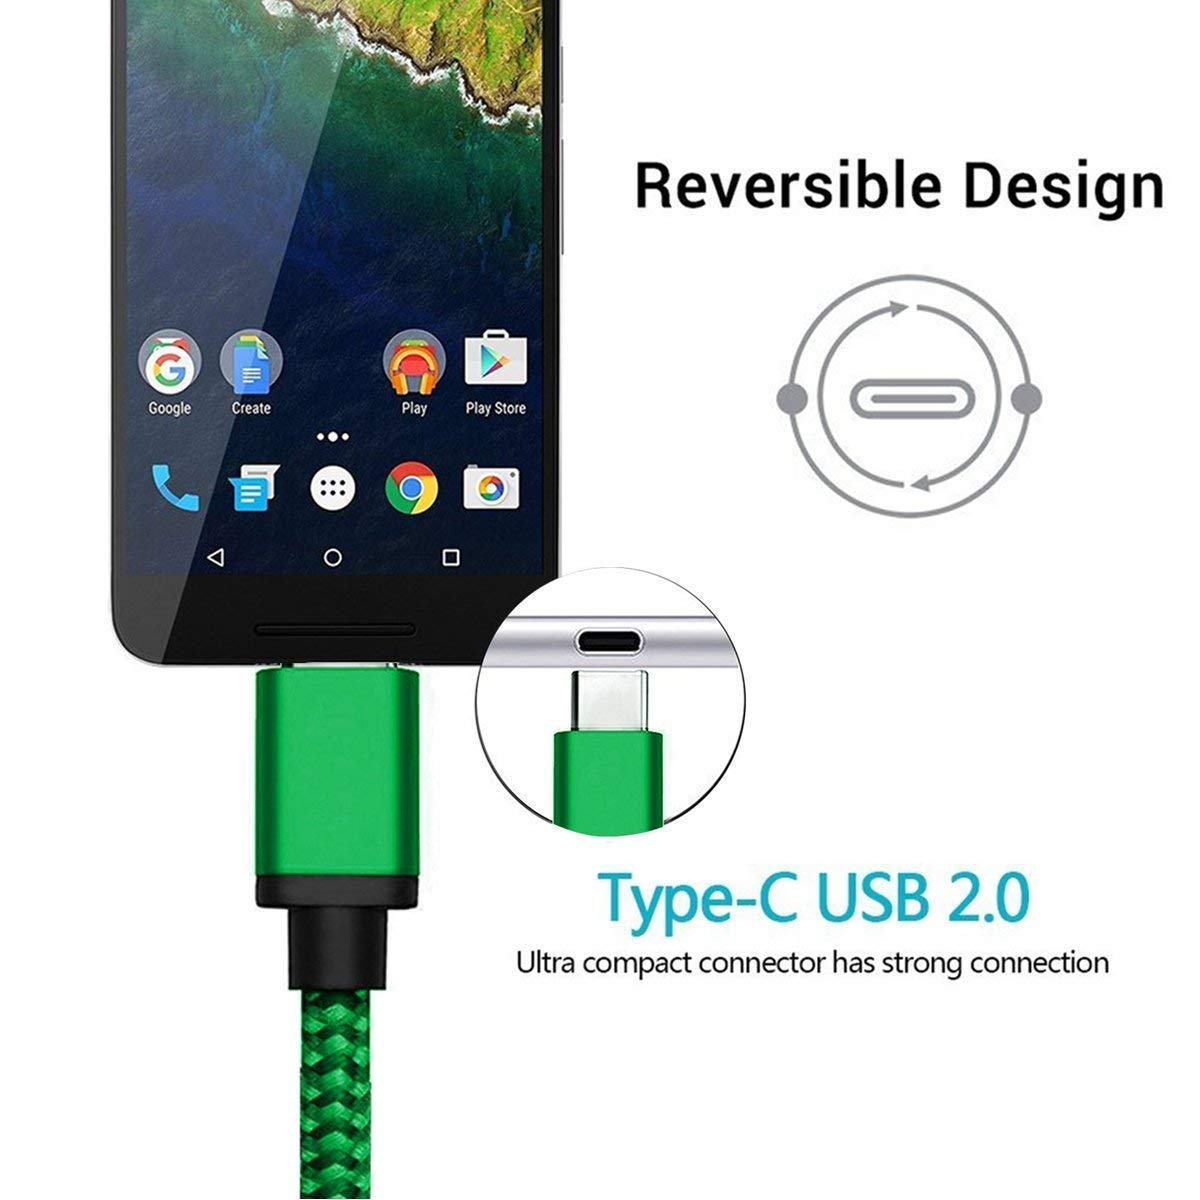 USB Type C Charger Cable 3-Pack ,Nylon Braided Charging Cord ,Works with Samsung Galaxy Fold Note 9 8 S10 S9 S8 S10E 10 Plus,LG V40 V50 V30 G8 G7 G6 Thinq,Google Pixel 3 2 3a XL 3-Pack 3.3//6.6//10 FT